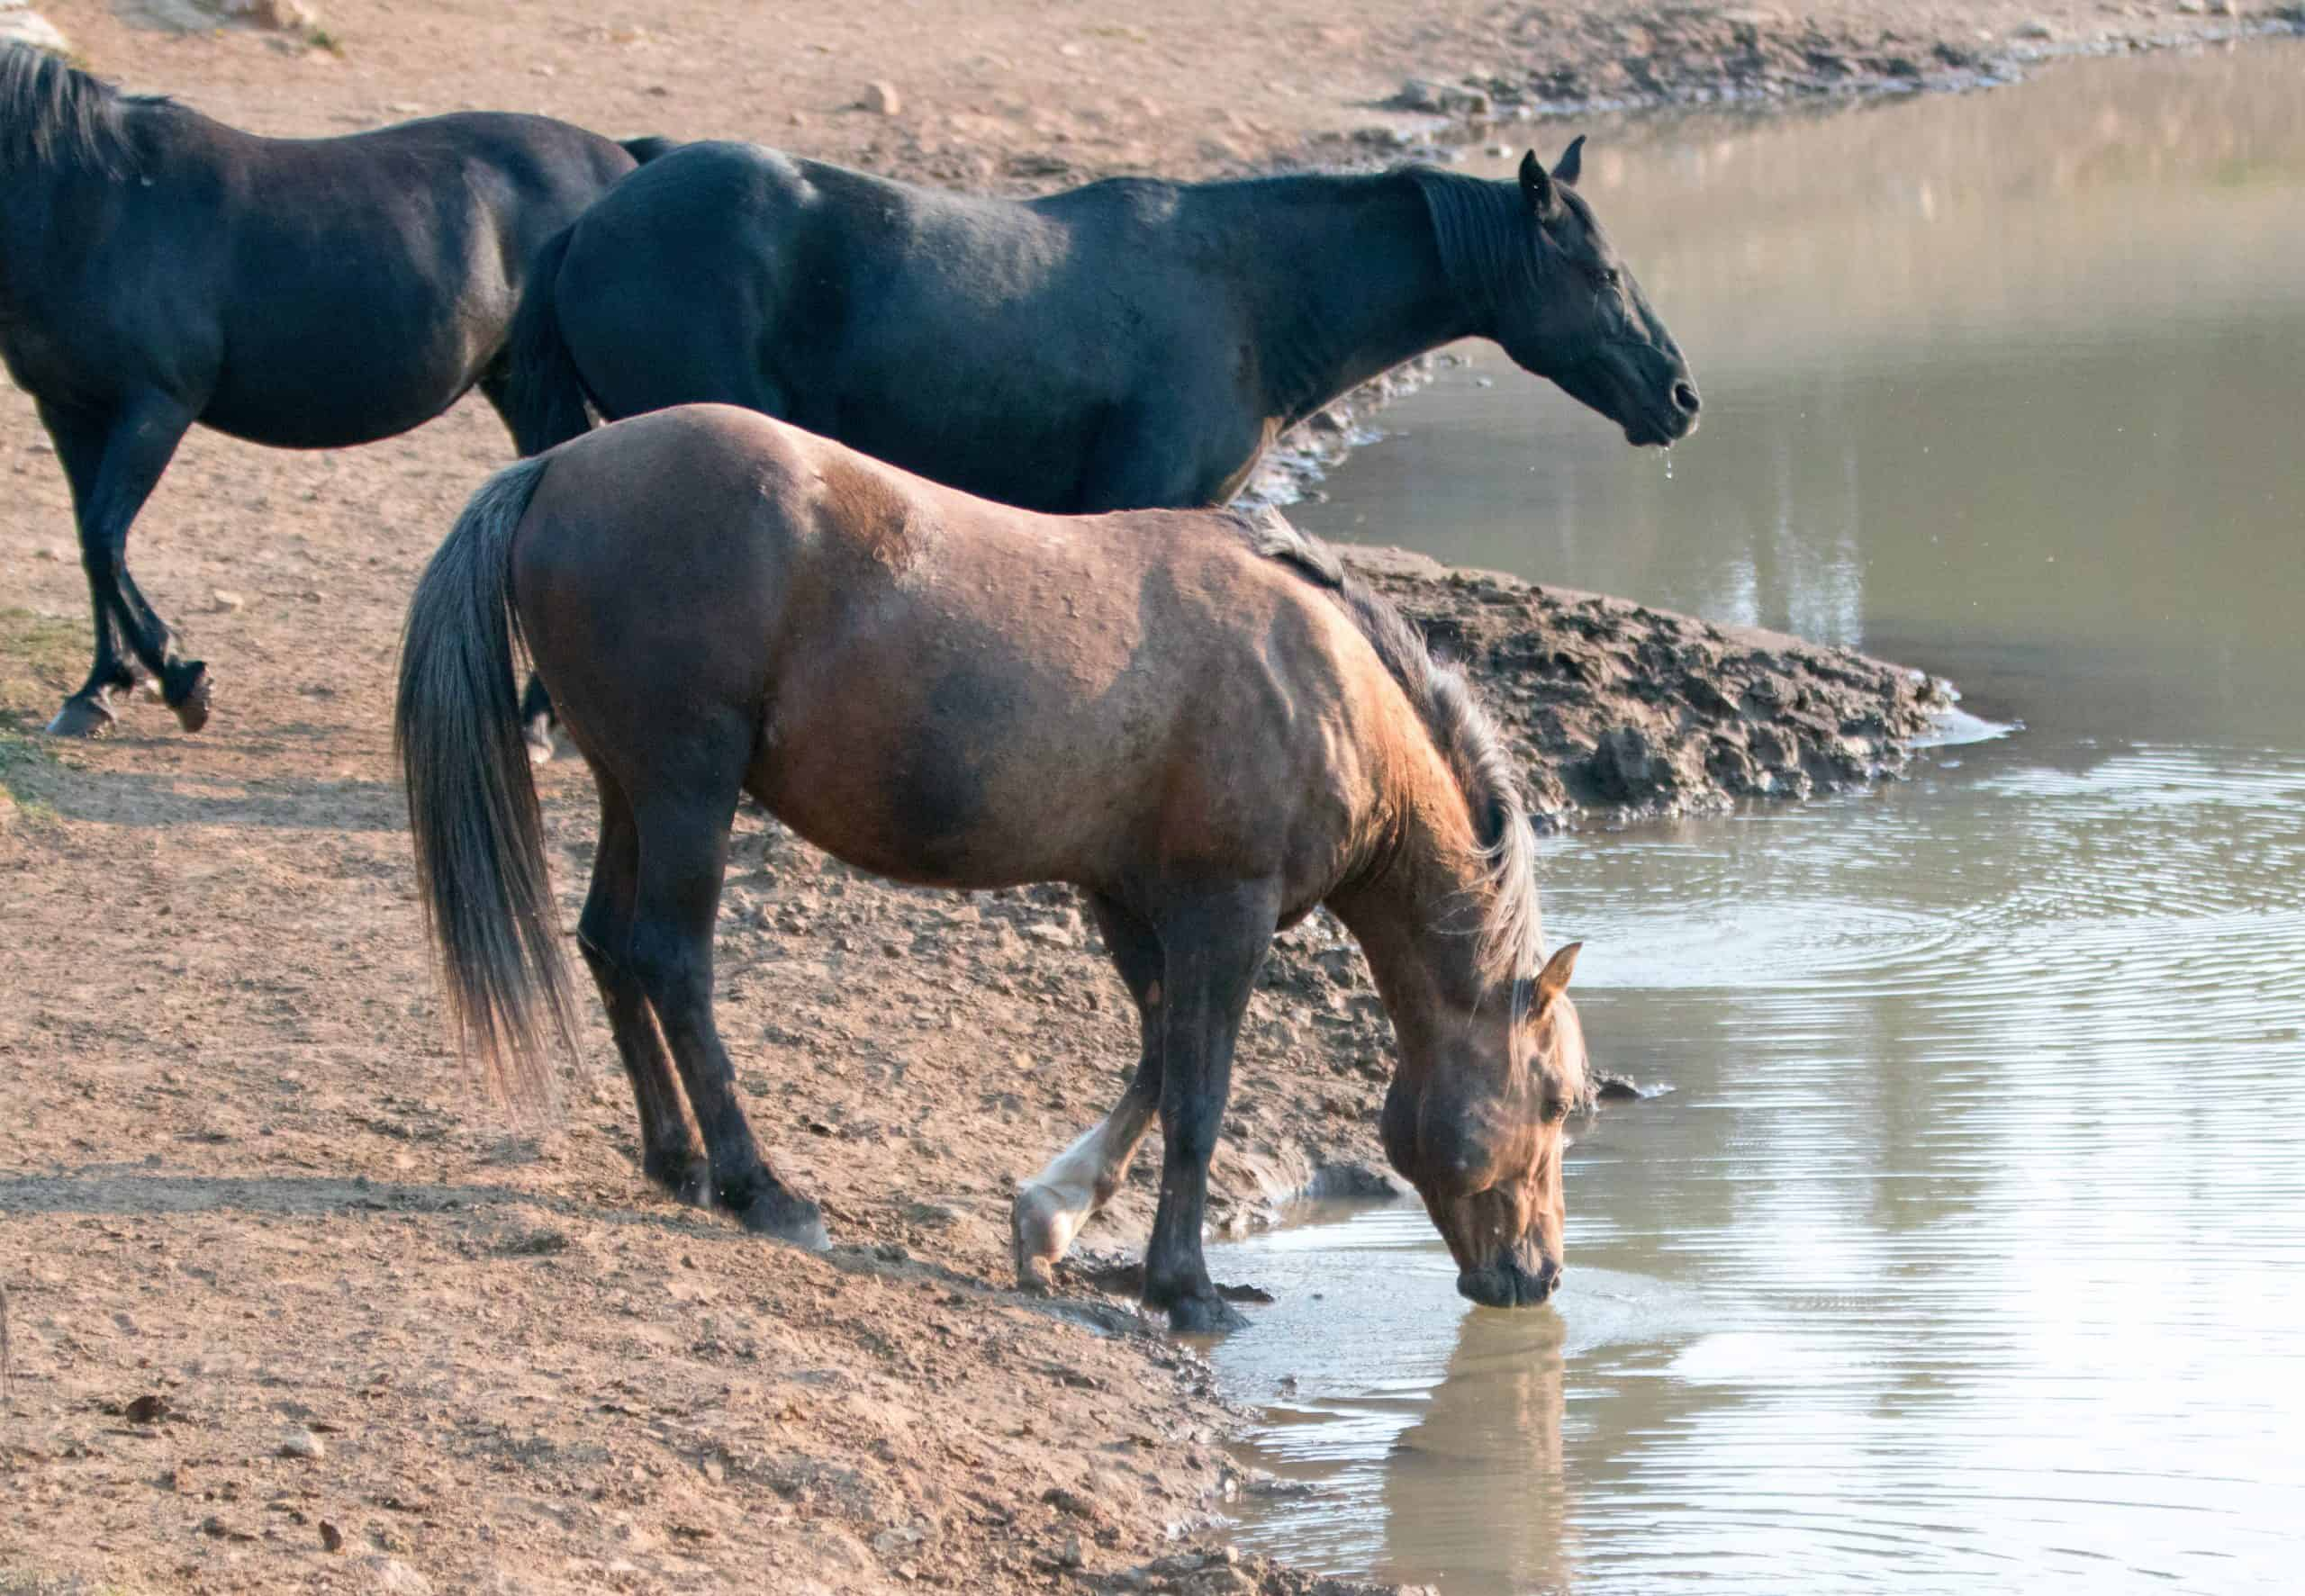 Sooty Palomino stallion drinking water at waterhole with herd of wild horses at the waterhole in the Pryor Mountains Wild Horse Range in Montana United States